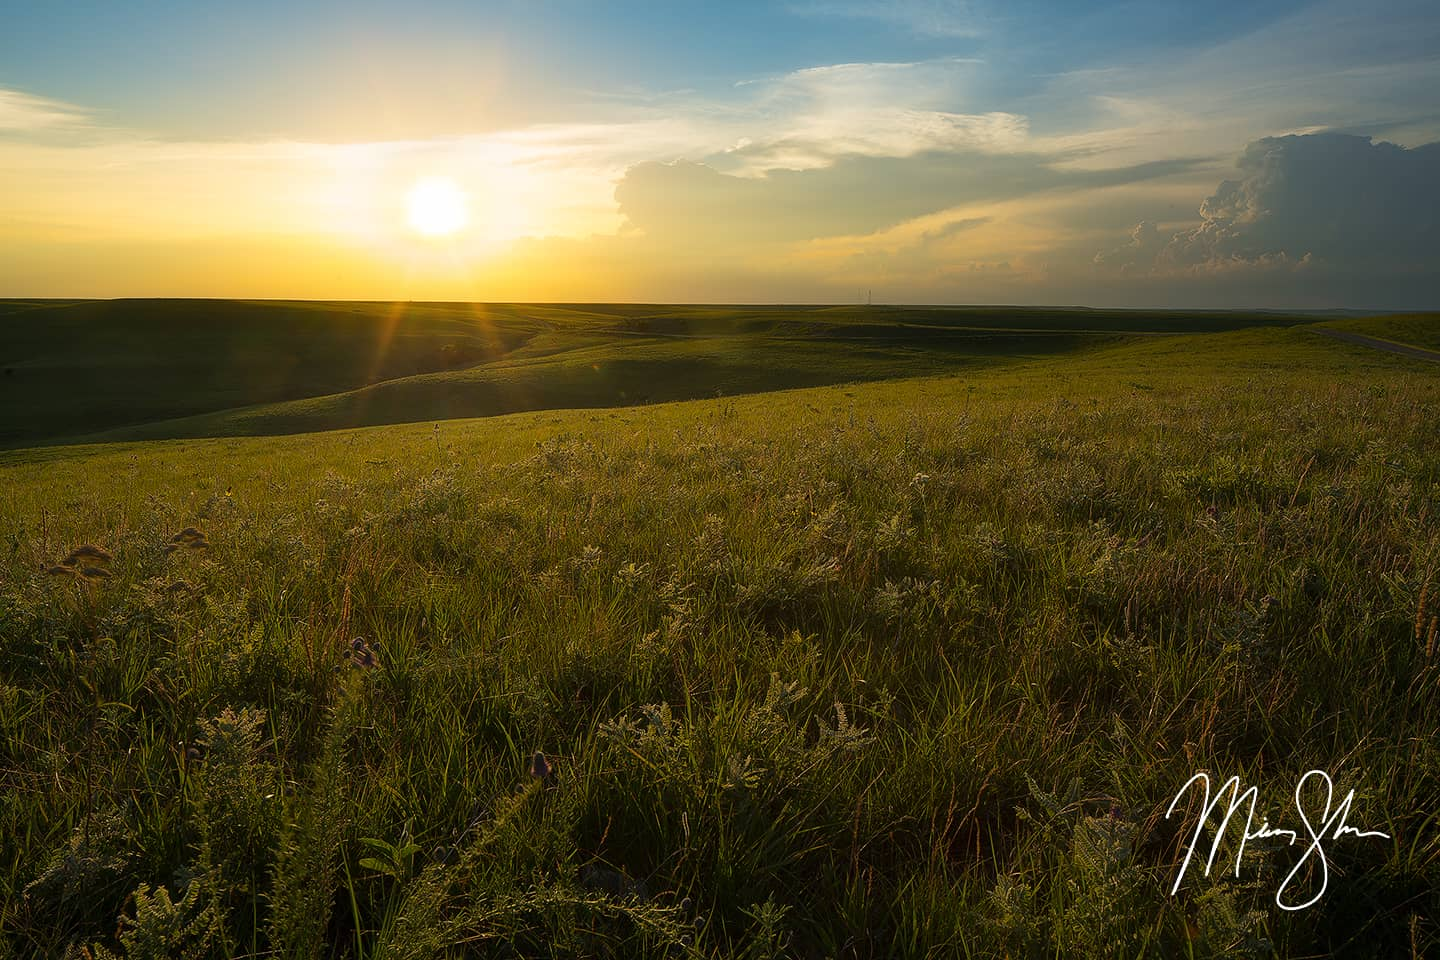 Open edition fine art print of Flint Hills Sunset Warmth from Mickey Shannon Photography. Location: Texaco Hill, The Flint Hills, Kansas